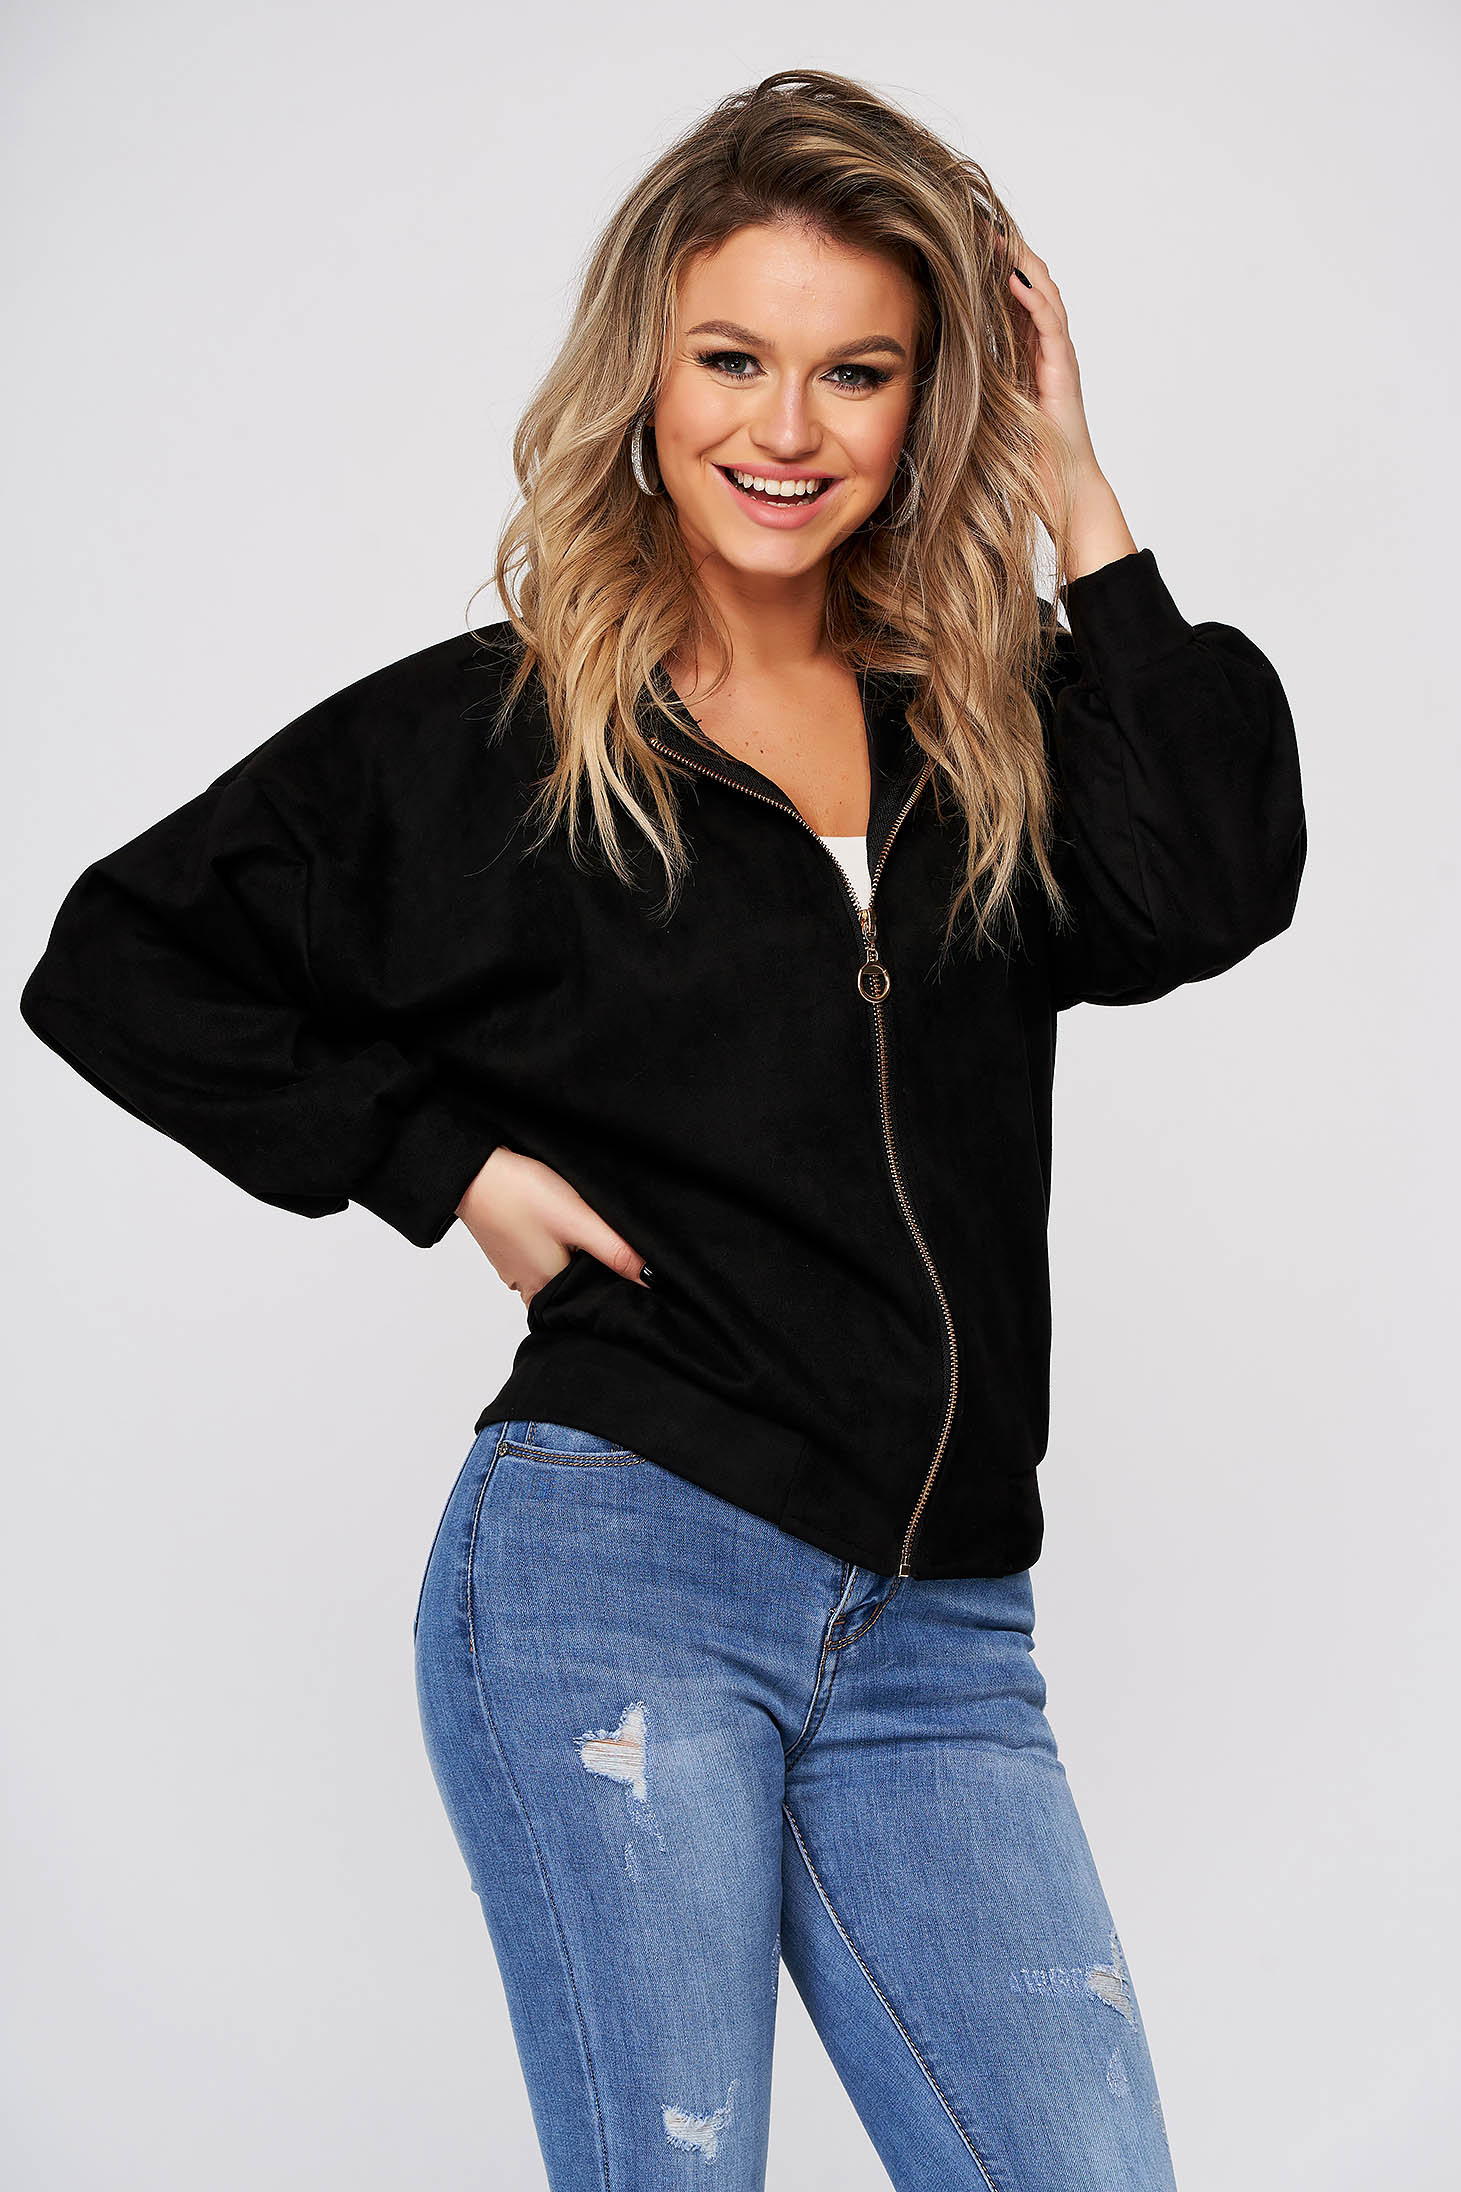 Black jacket casual short cut from soft fabric